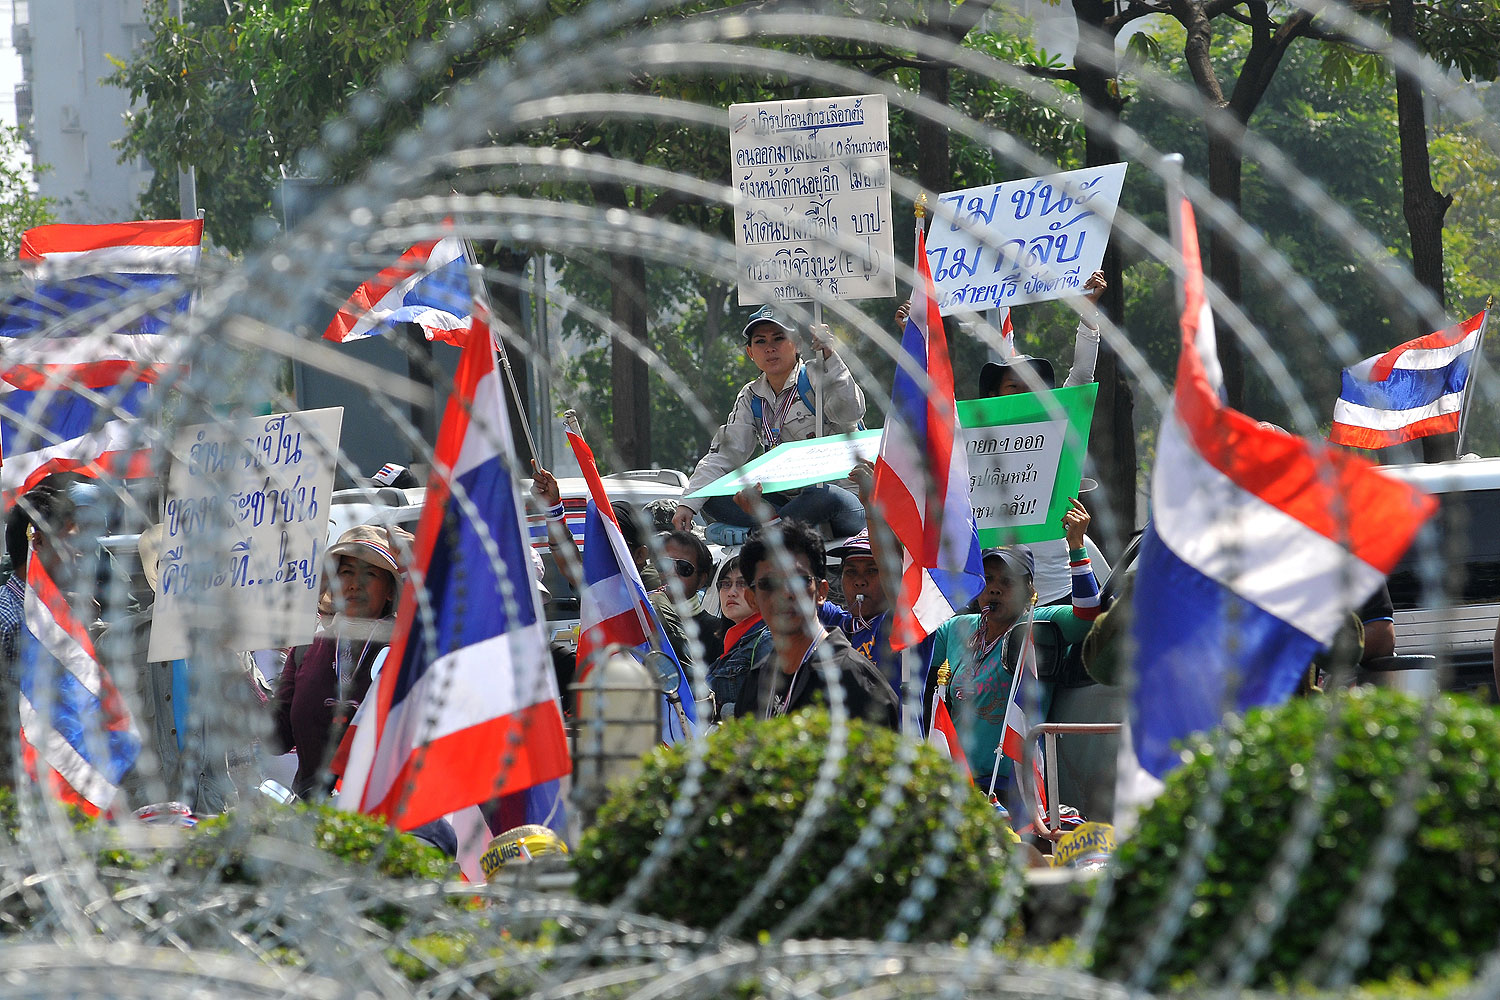 Anti-government protesters wave national flags as they block the street in front of the Office of the Defence Permanent Secretary during a rally in Bangkok on Jan. 22, 2014